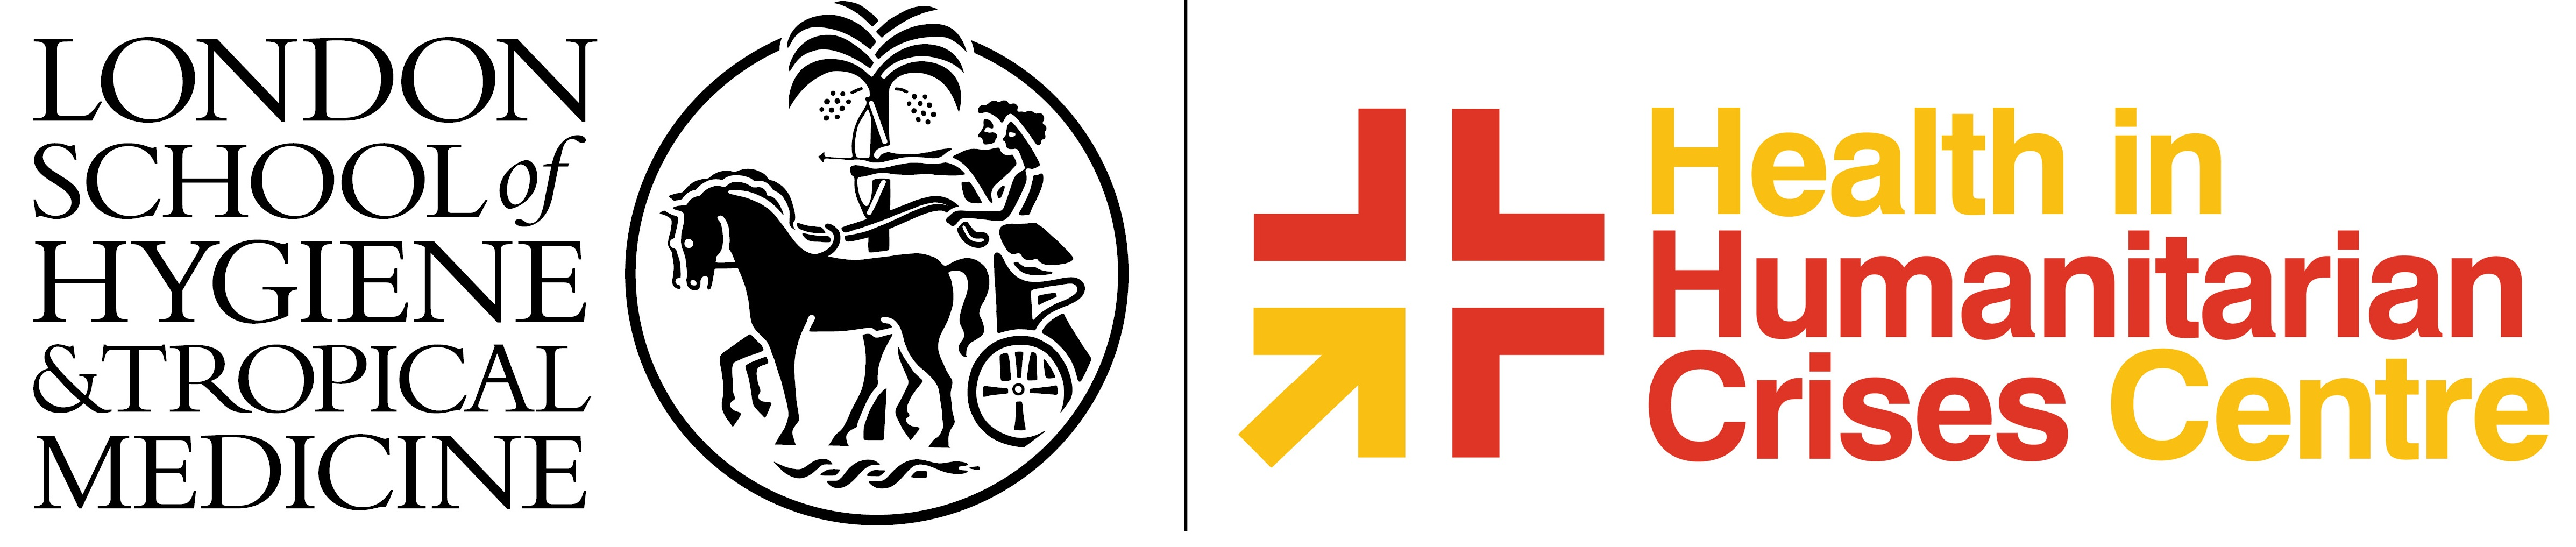 lshtm logo and crises centre logo lockup